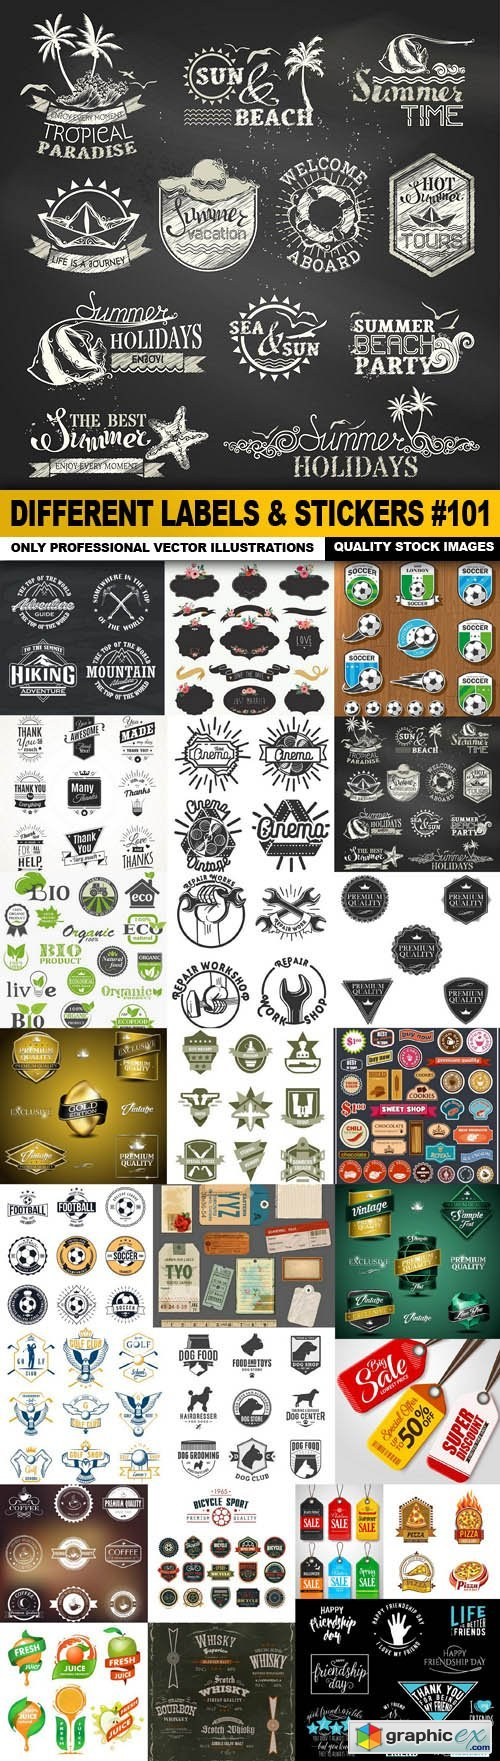 Different Labels & Stickers #101 - 25 Vector